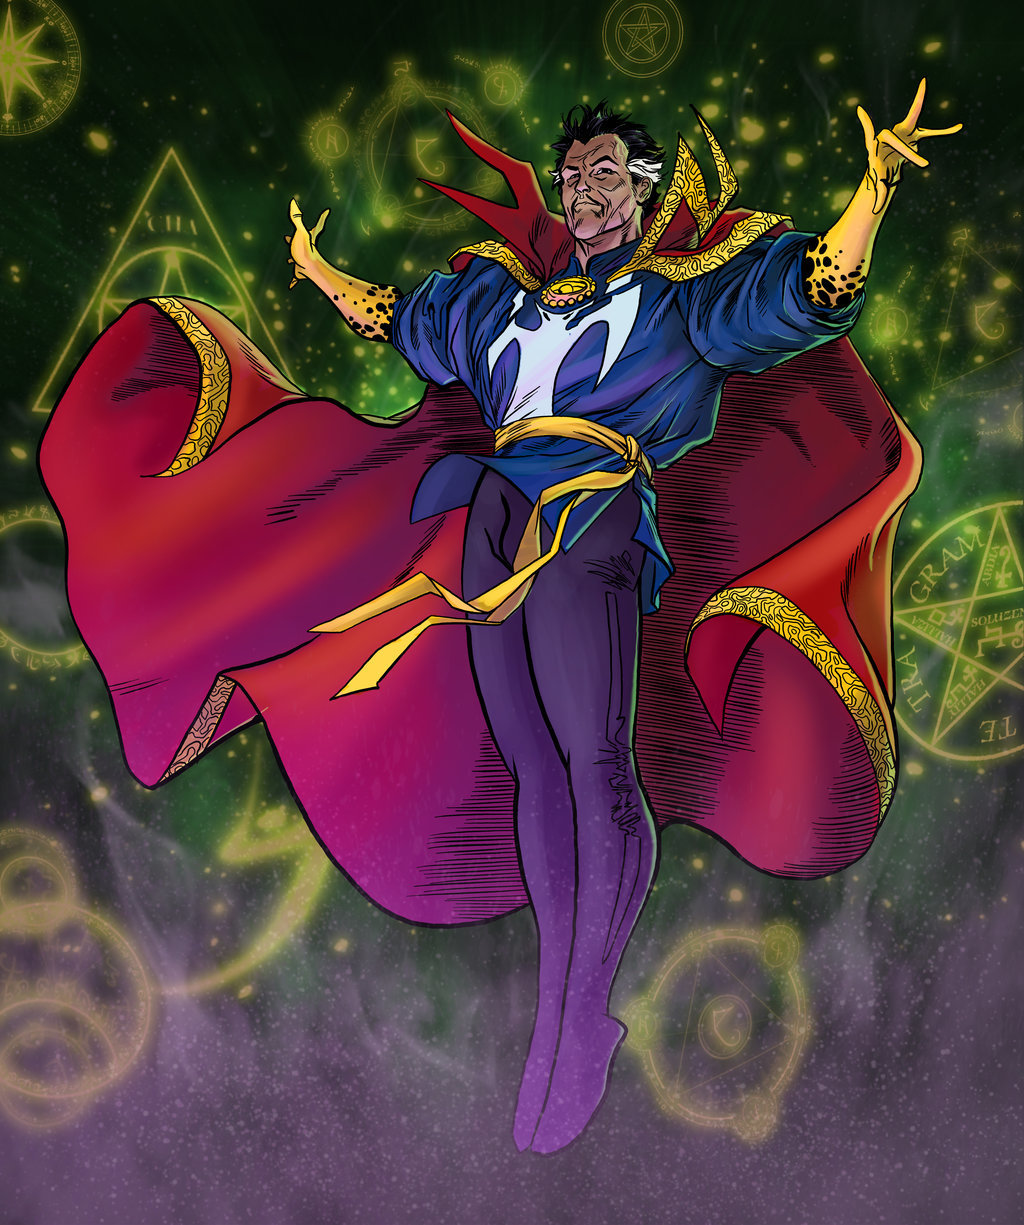 Matt james doctor strange by mattjamescomicarts d8a4y1z